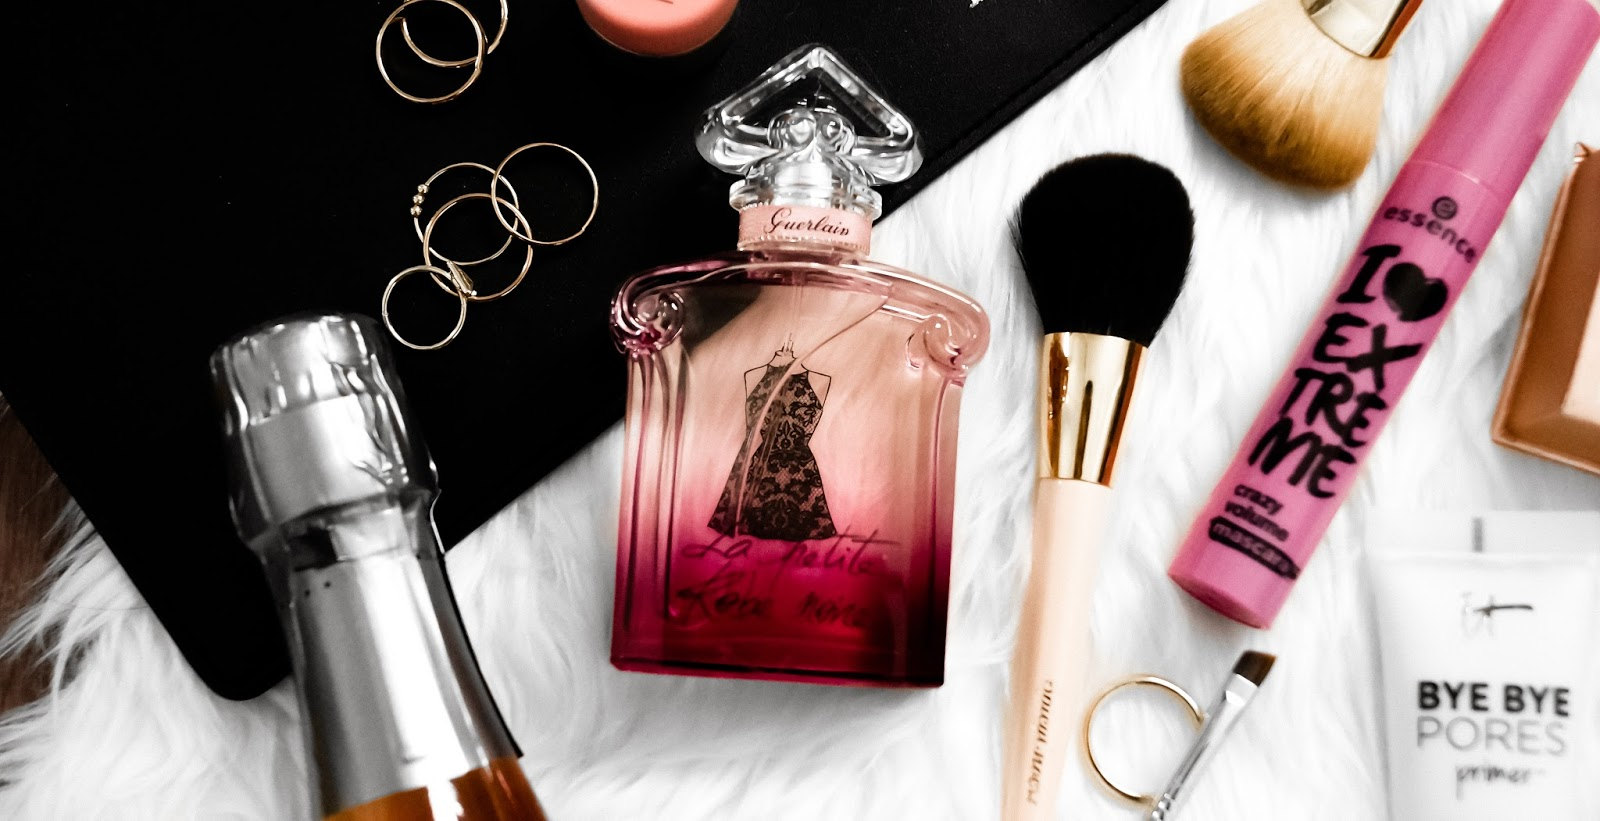 Review Guerlain La Petite Robe Noire Ma Hippie Chic Has Been A Brand That Resonates Elegance And Luxury Its Celebrates The Modern Woman Products Never Makes You Feel